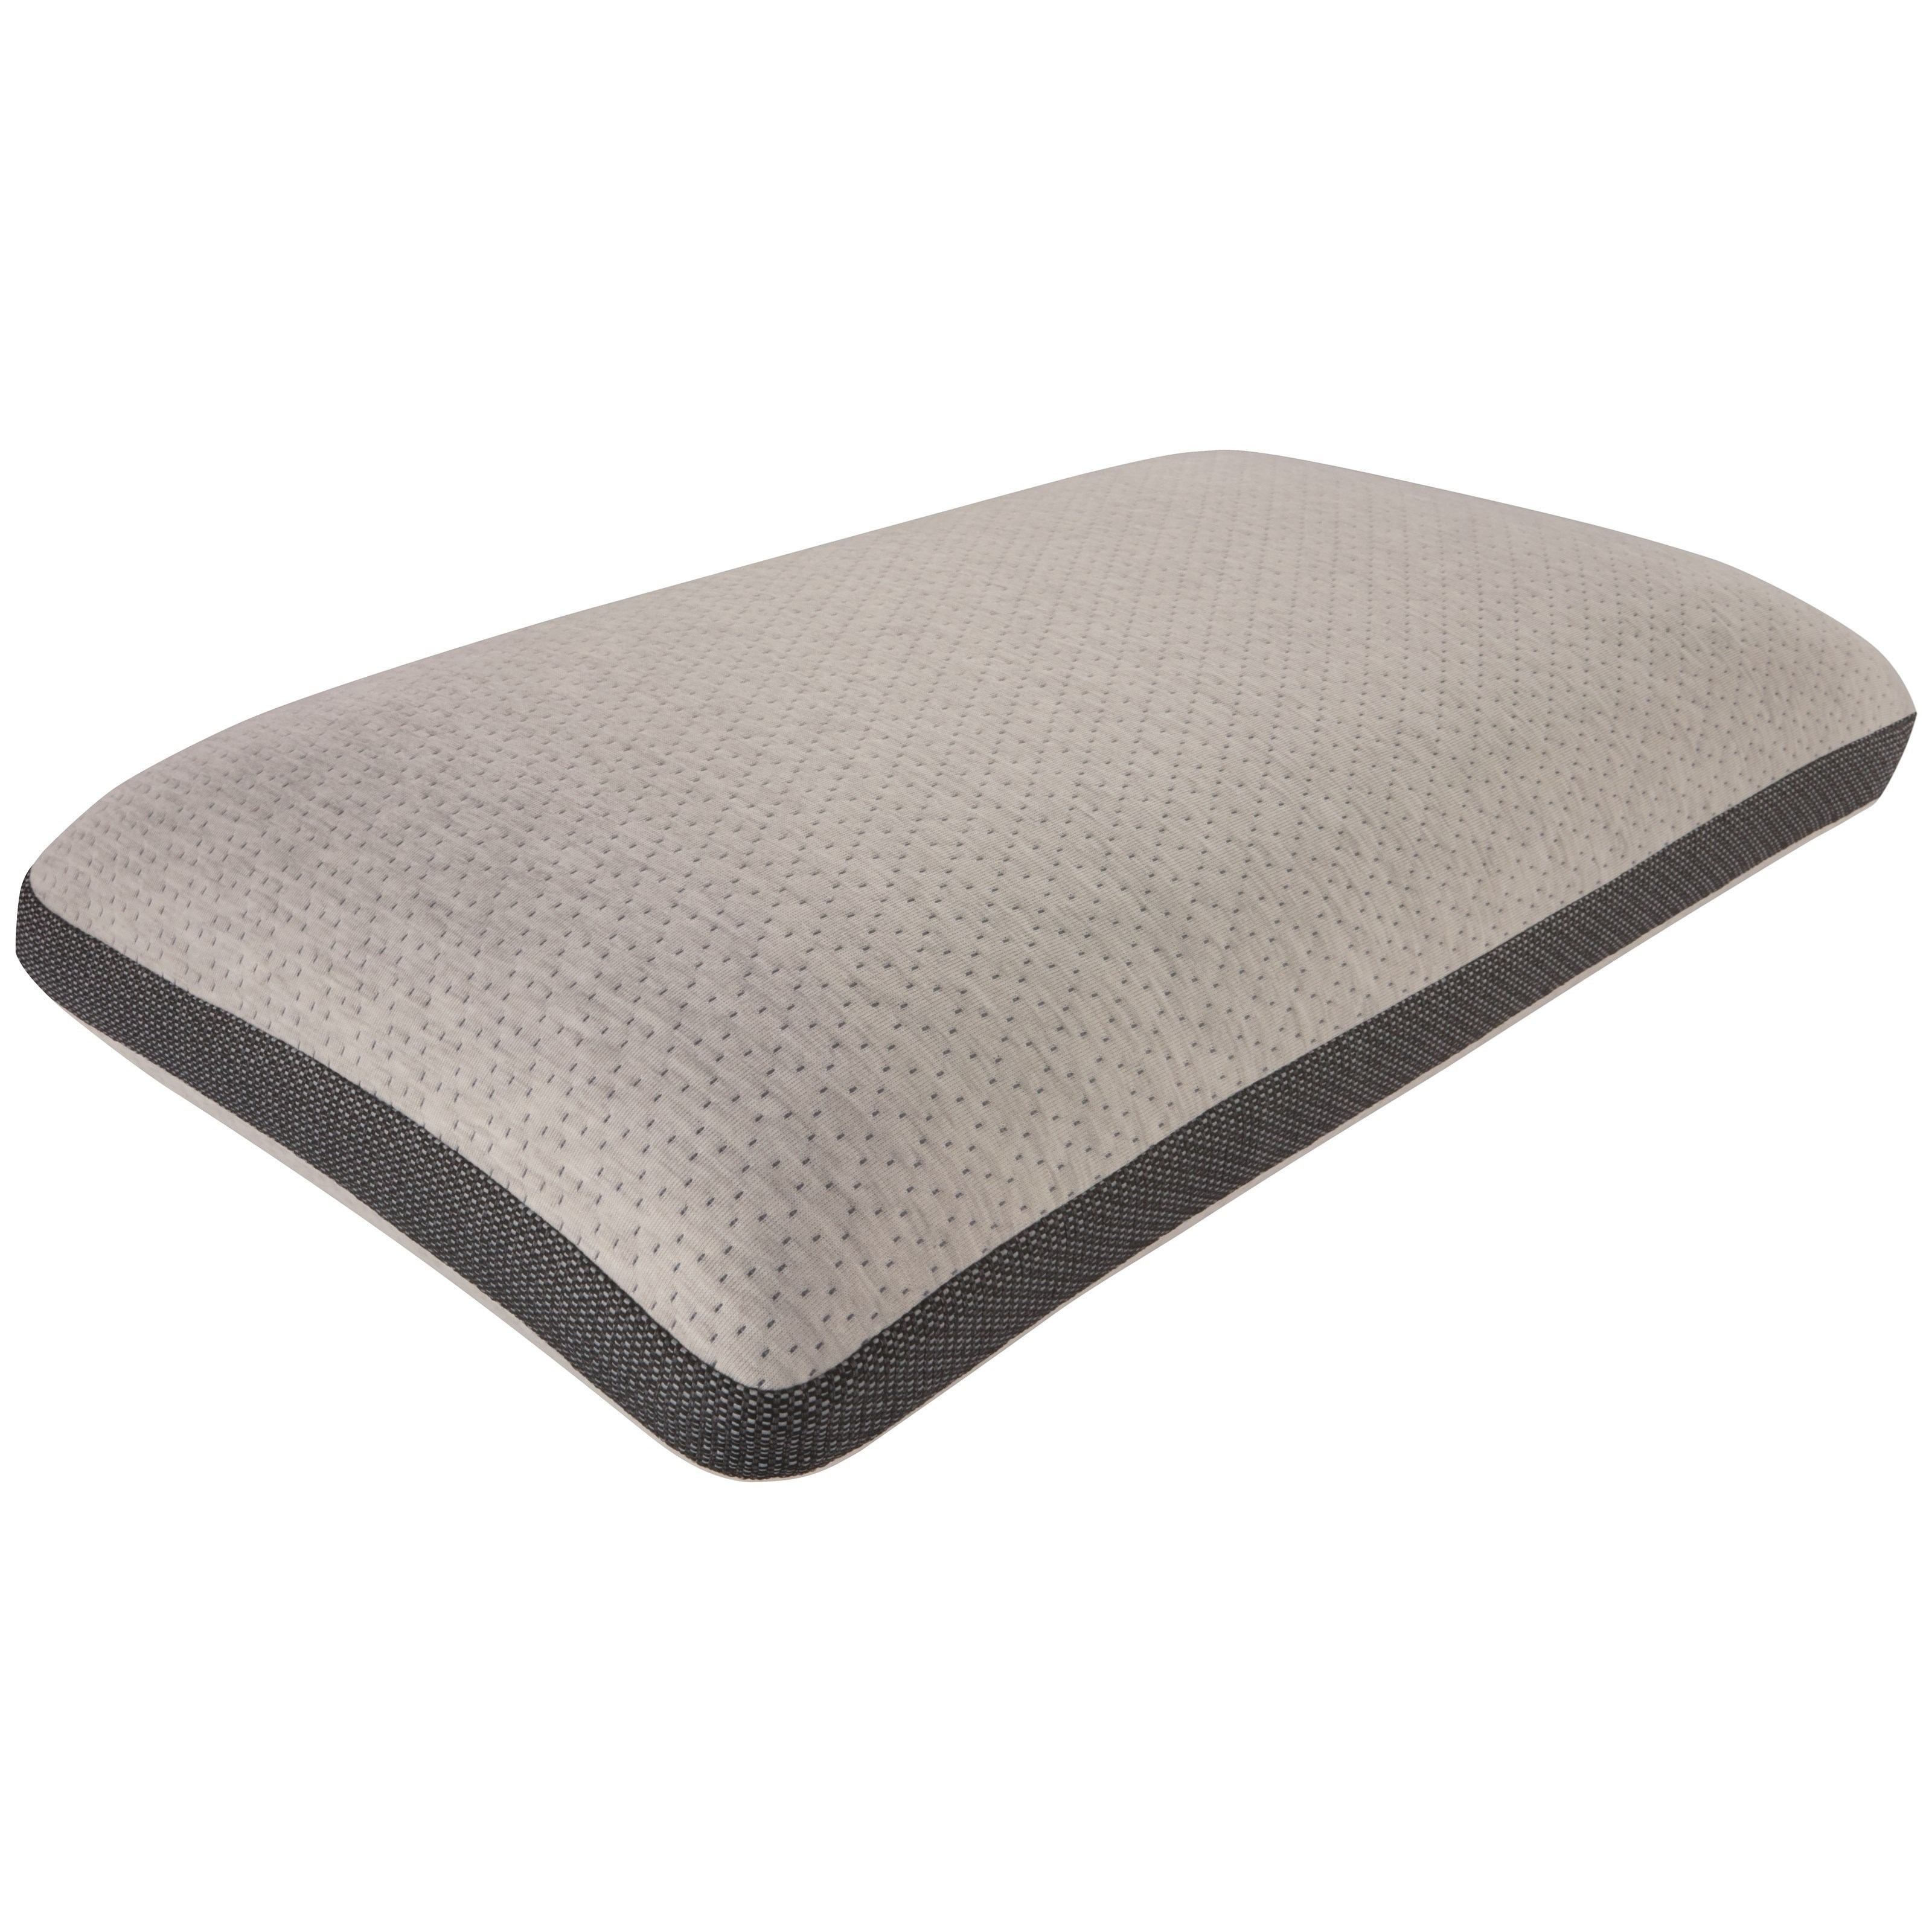 Absolute Relaxation Pillow Absolute Relaxation Pillow by Beautyrest at Furniture Superstore - Rochester, MN